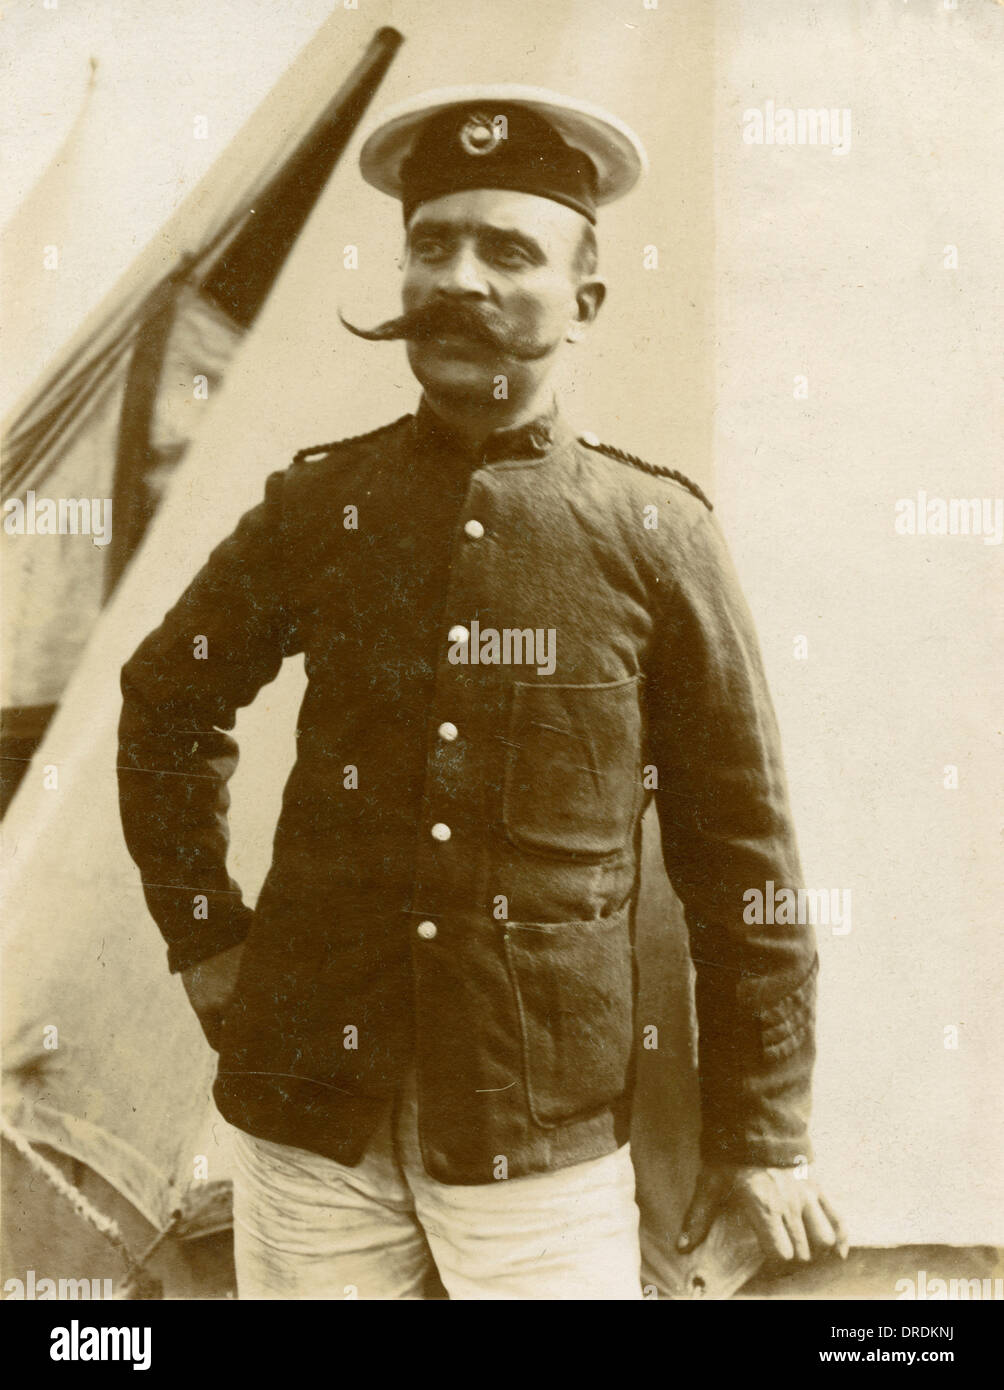 Man in uniform with moustache - Stock Image